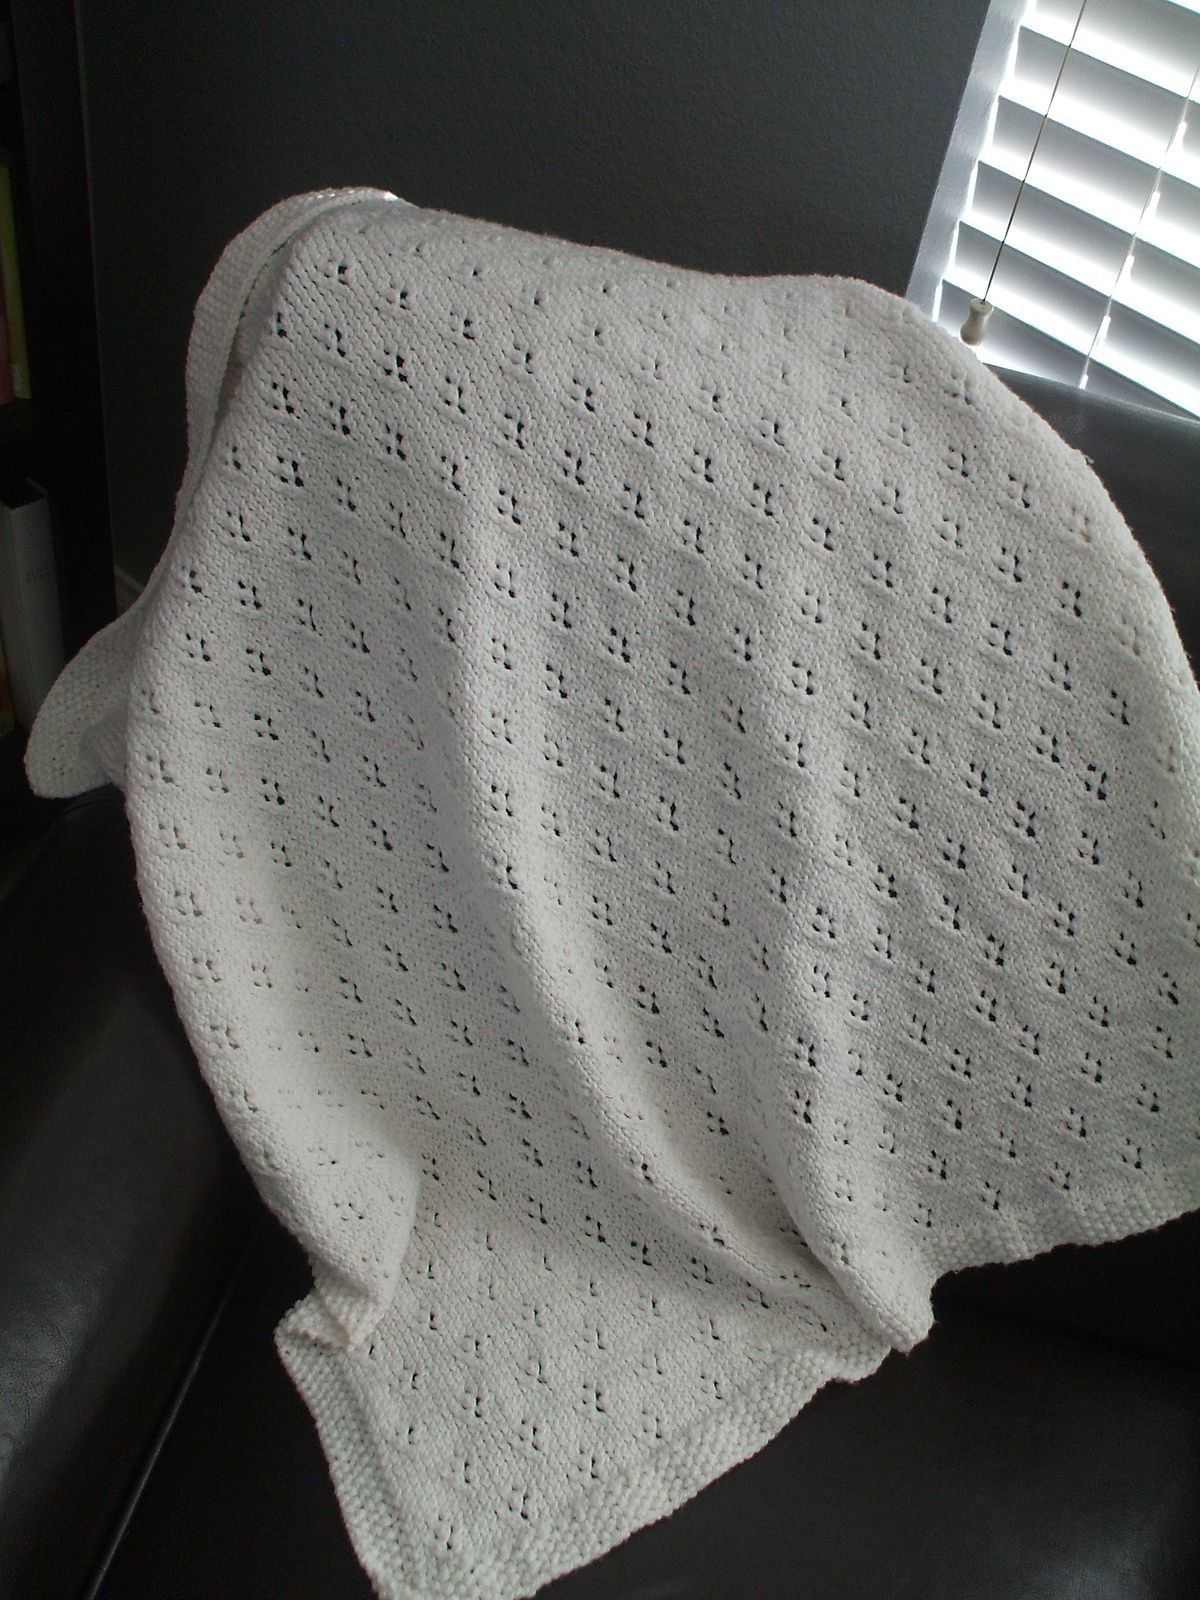 Ravelry: Alex\'s Baby Blanket by Angie Jaszek | Knit\'g projects ...